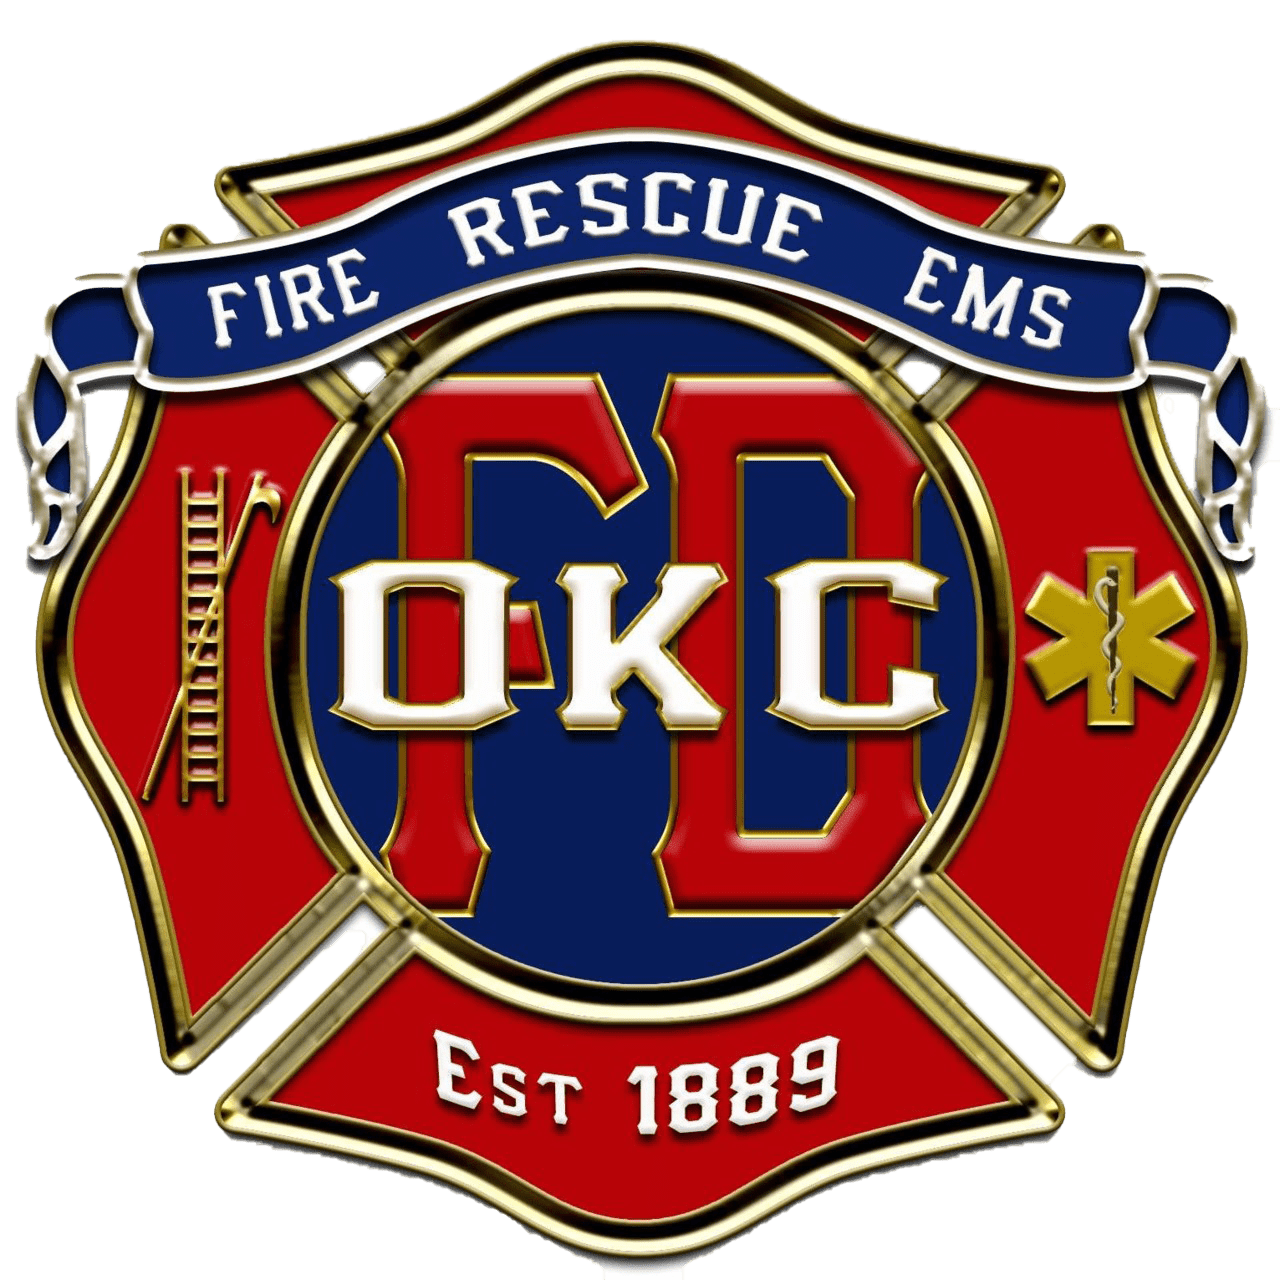 https://i2.wp.com/sourceonemro.com/wp-content/uploads/2019/09/OKC_Fire.png?ssl=1